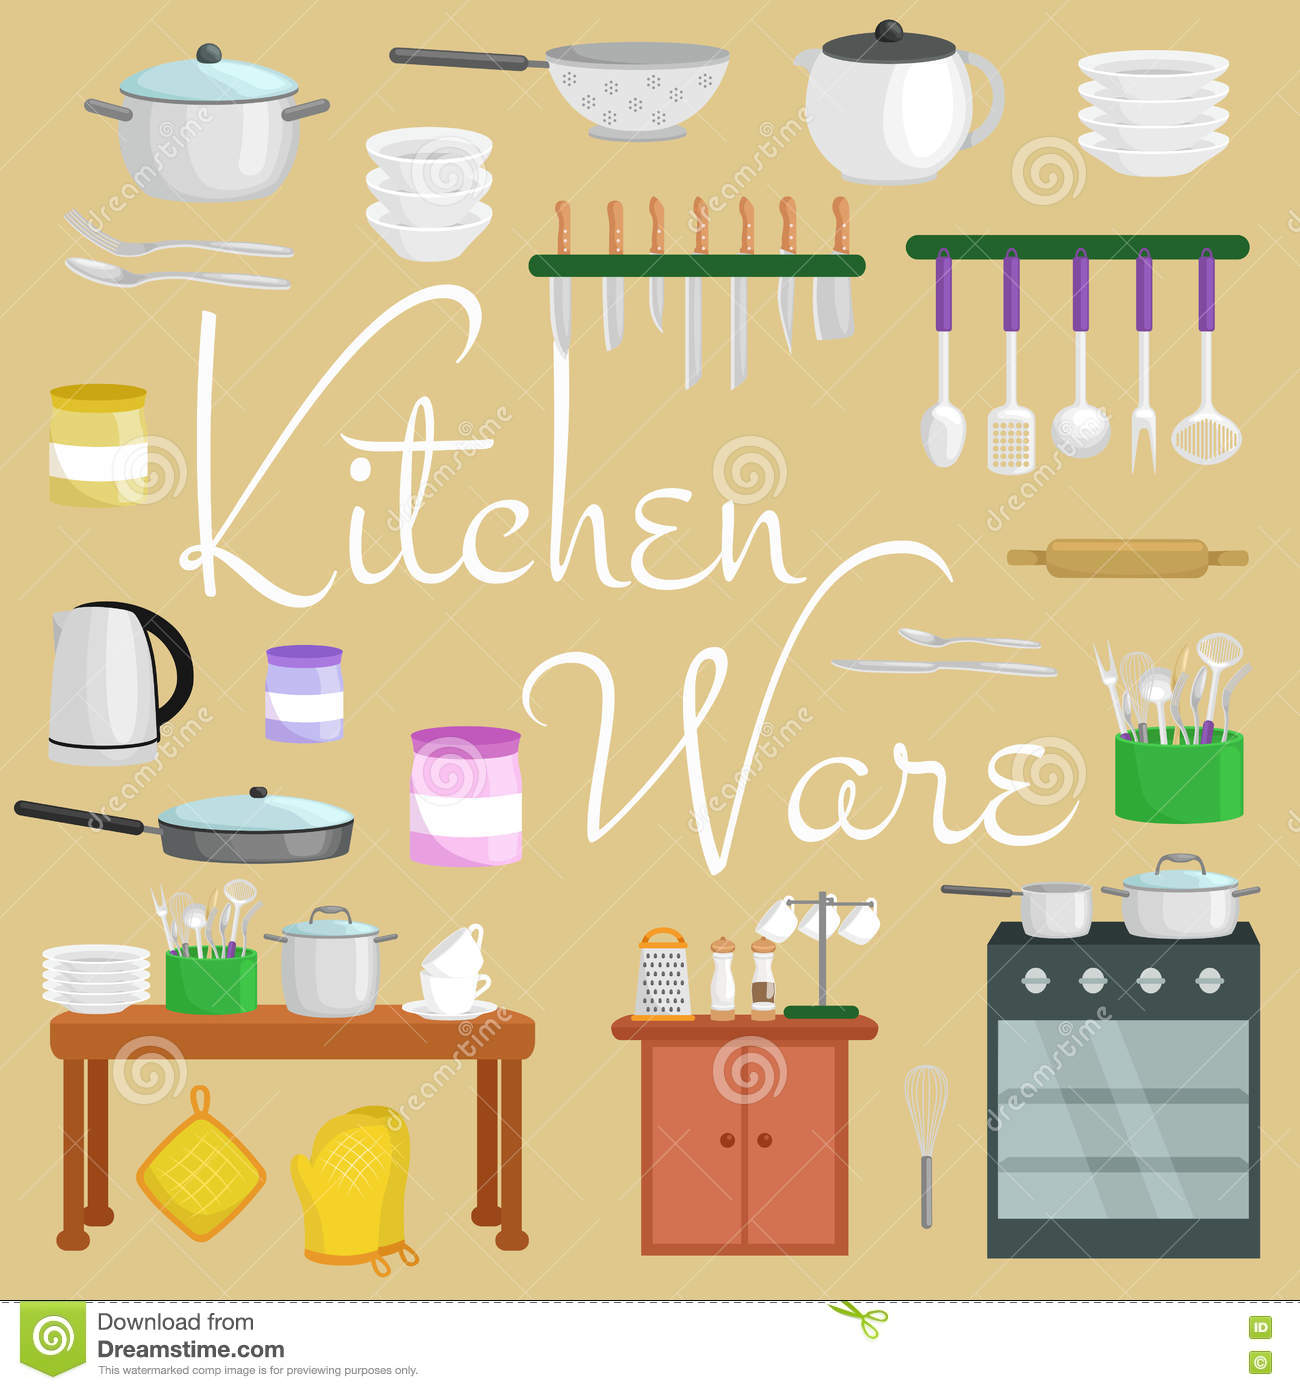 Kitchen Equipment Cartoon ~ Whisk cartoons illustrations vector stock images